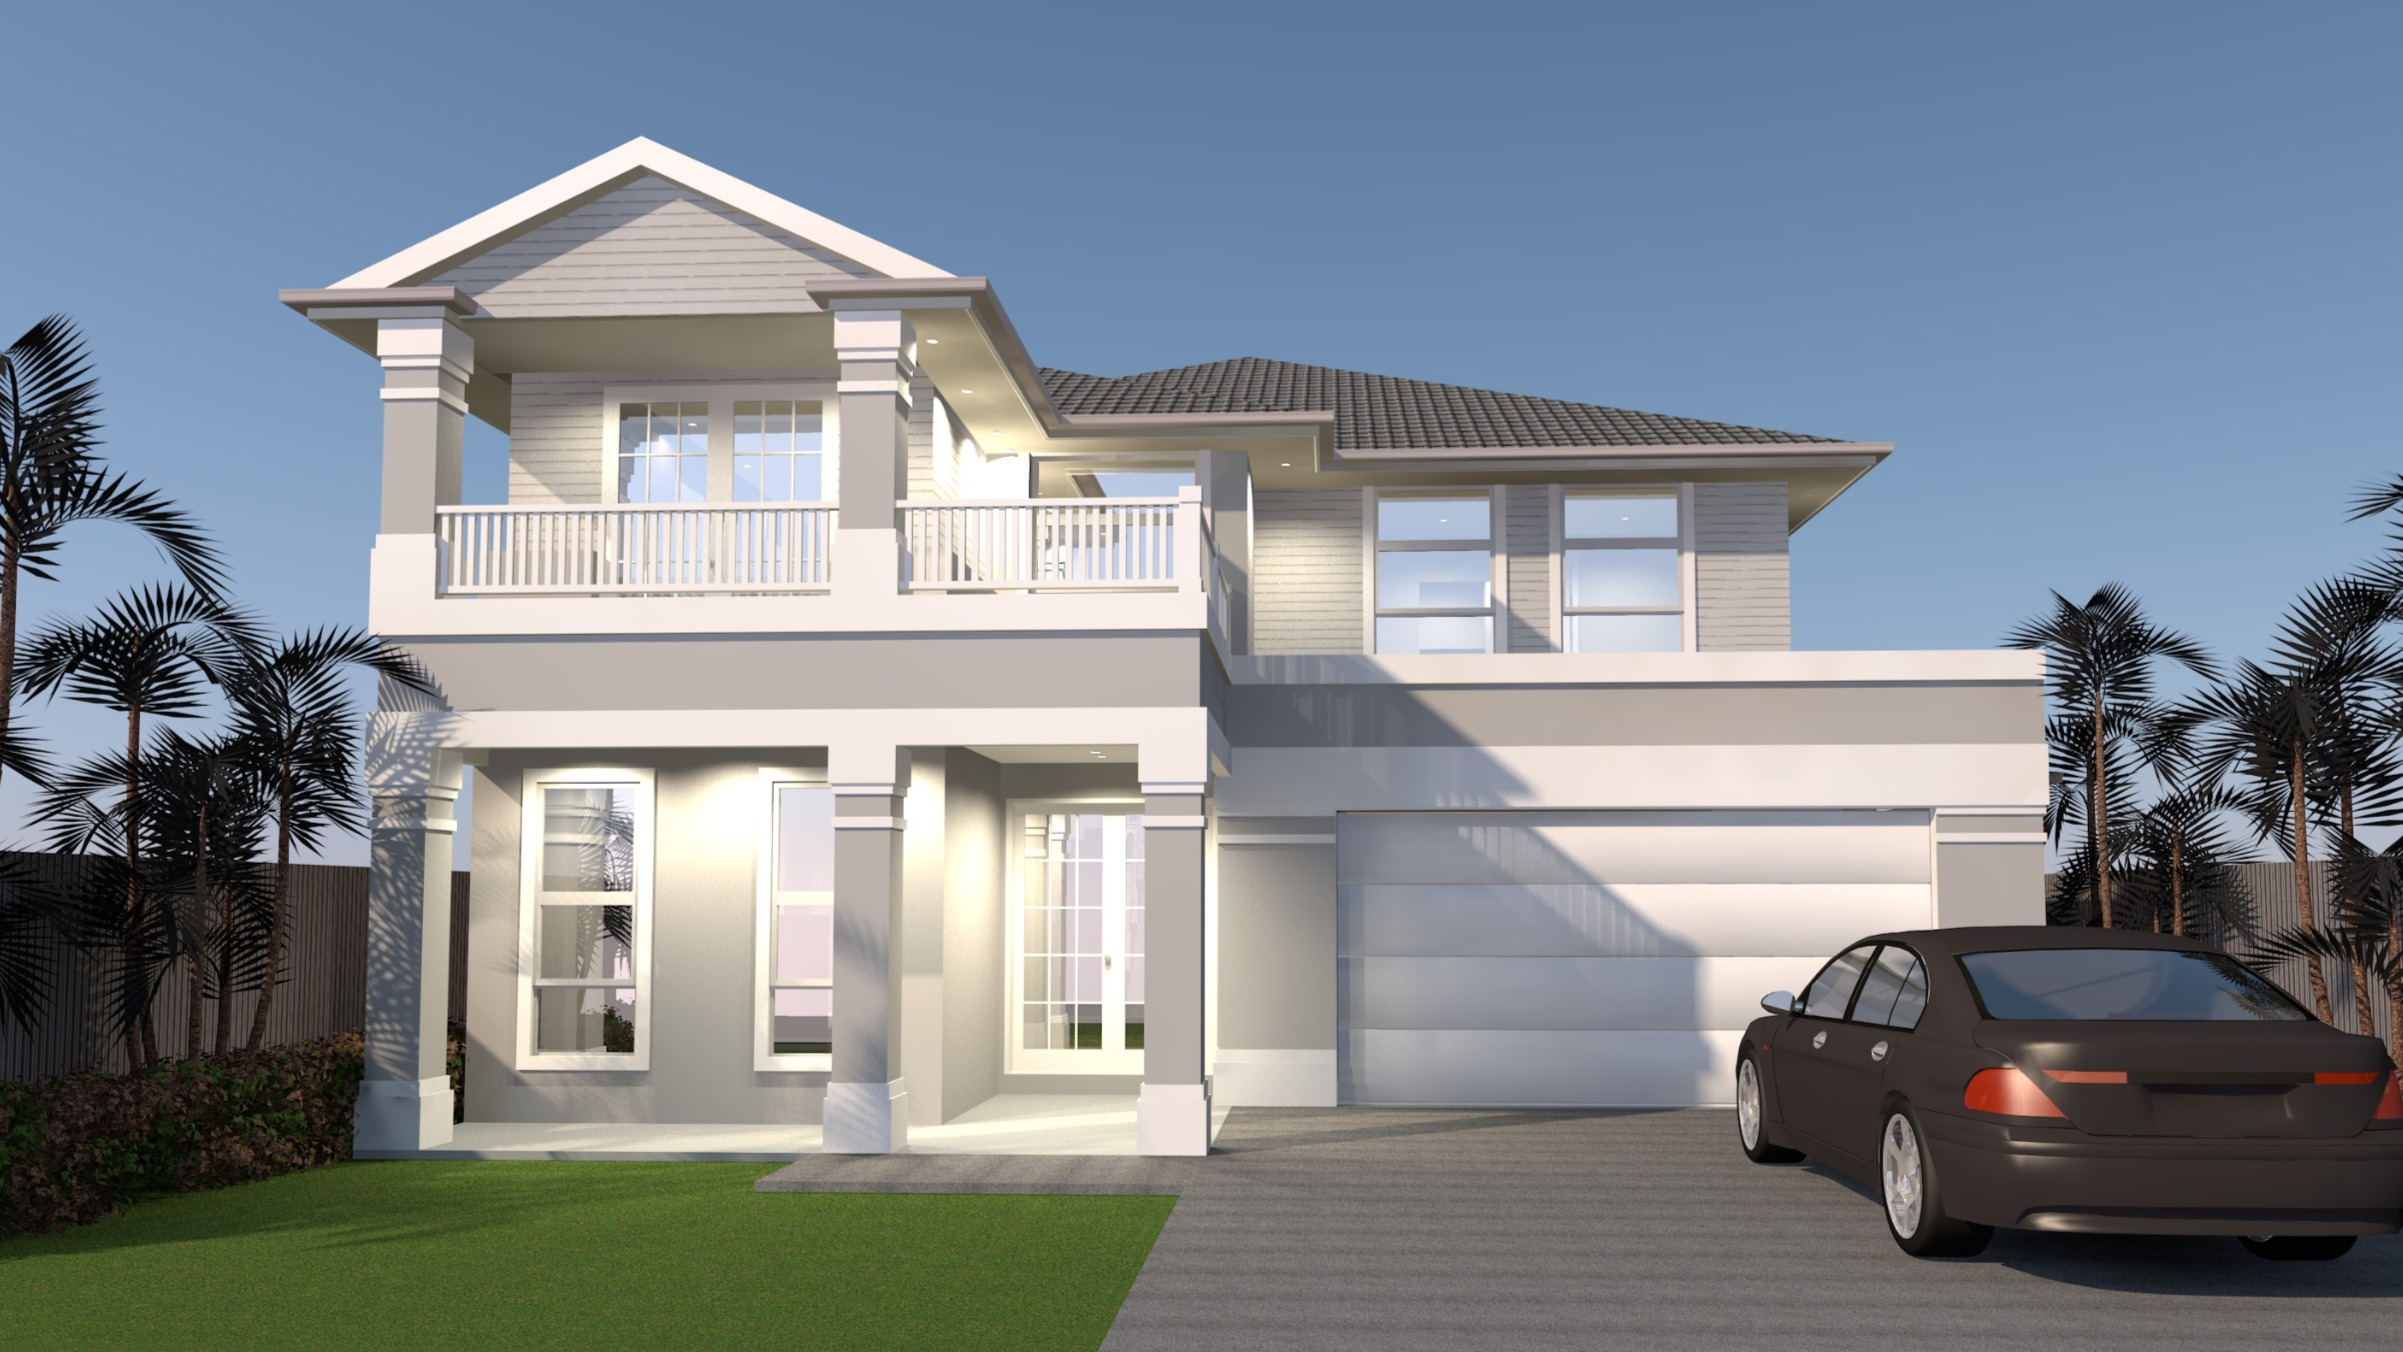 FJA Designs Drafting services Sydney